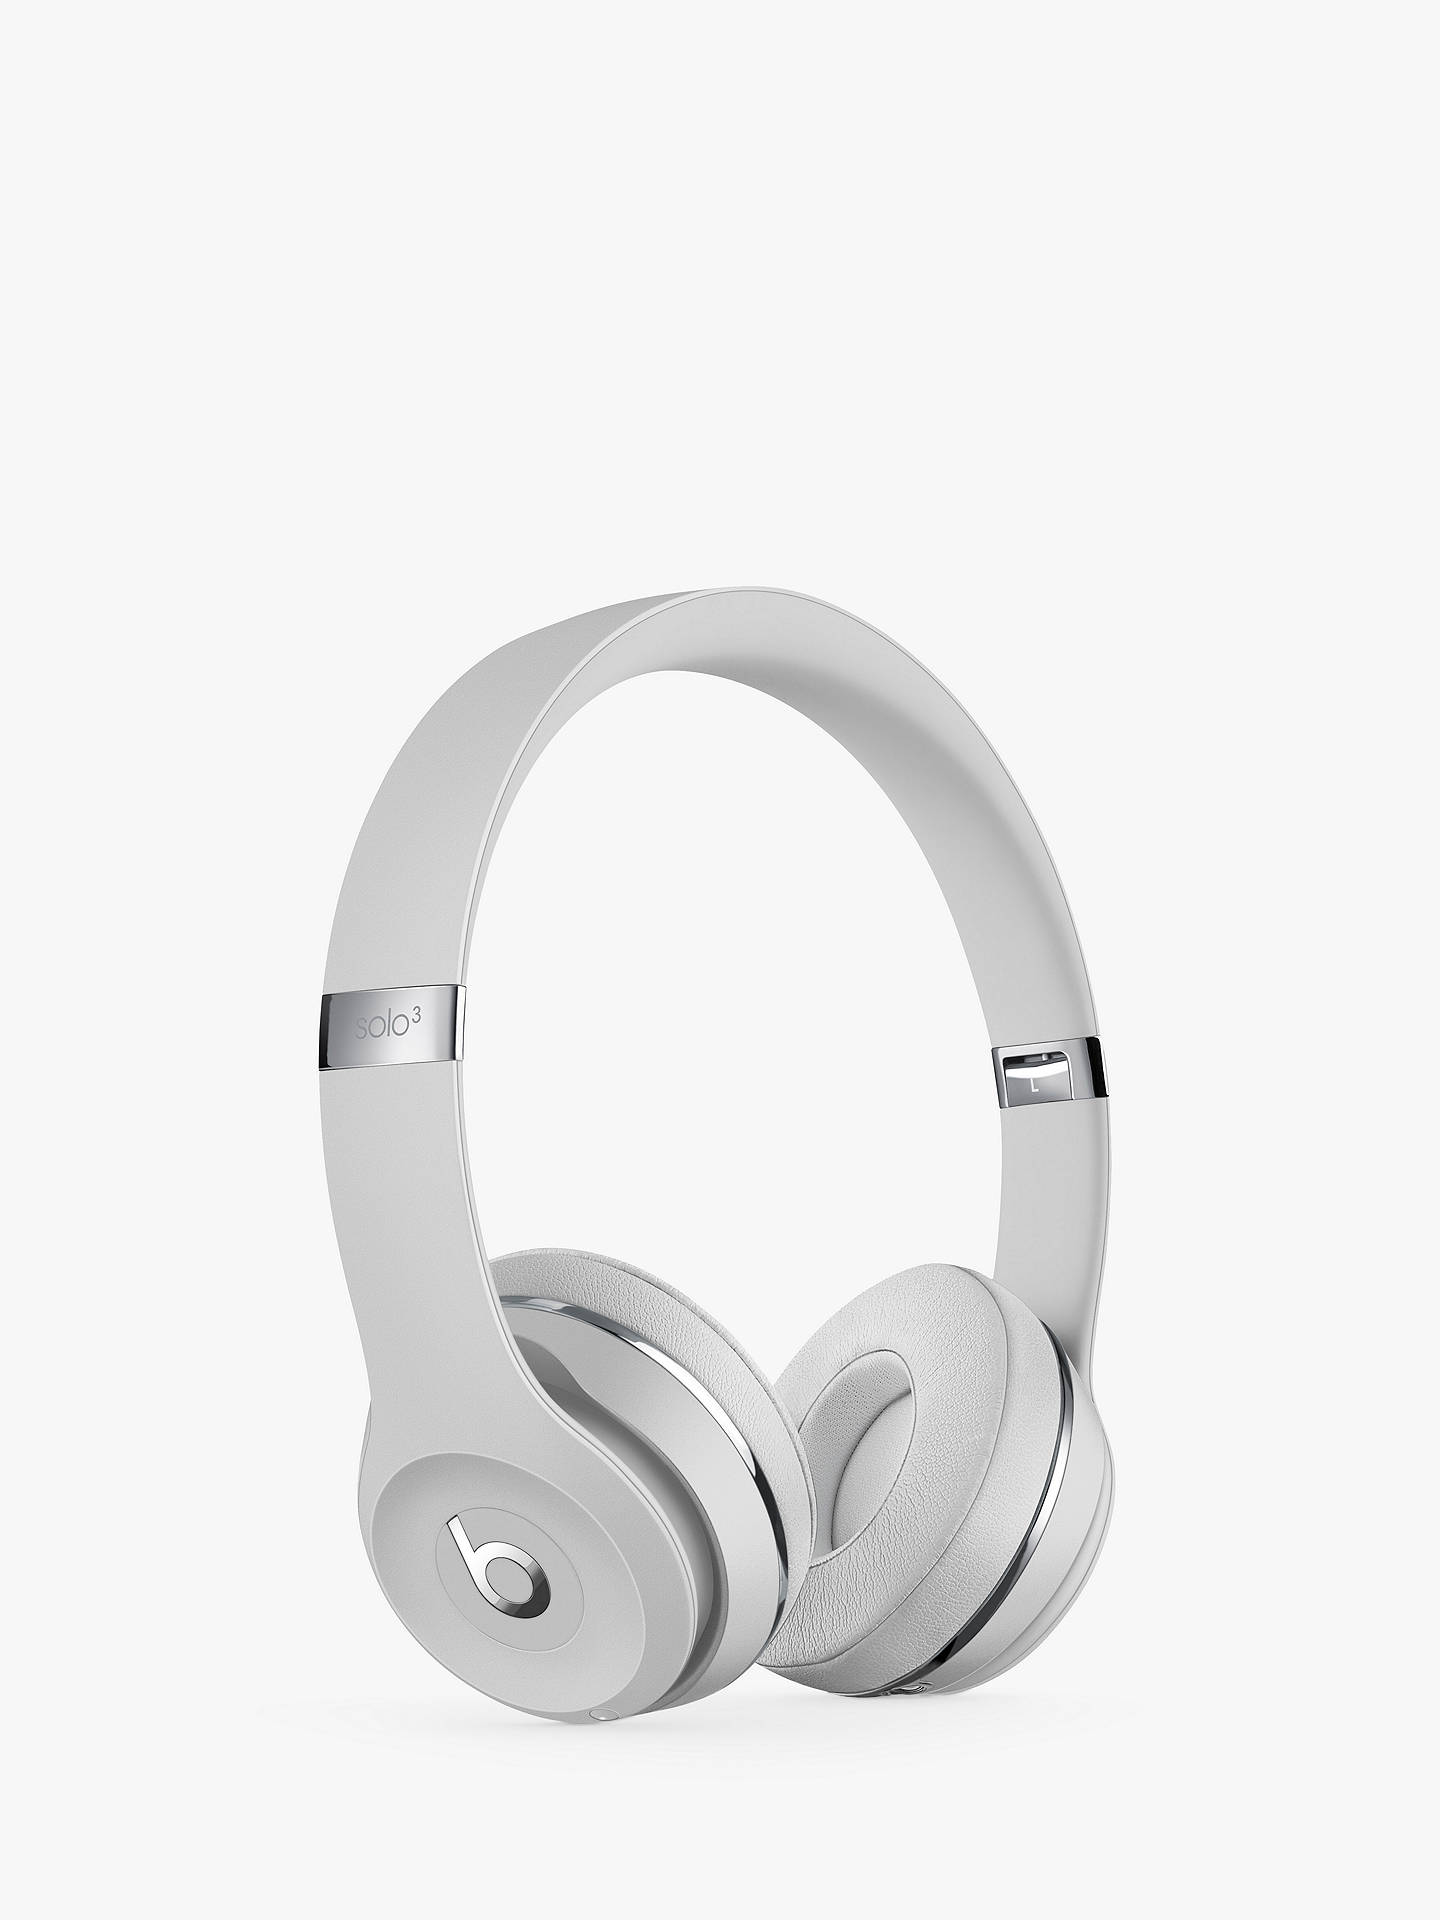 BuyBeats Solo³ Wireless Bluetooth On-Ear Headphones with Mic/Remote, Satin Silver Online at johnlewis.com